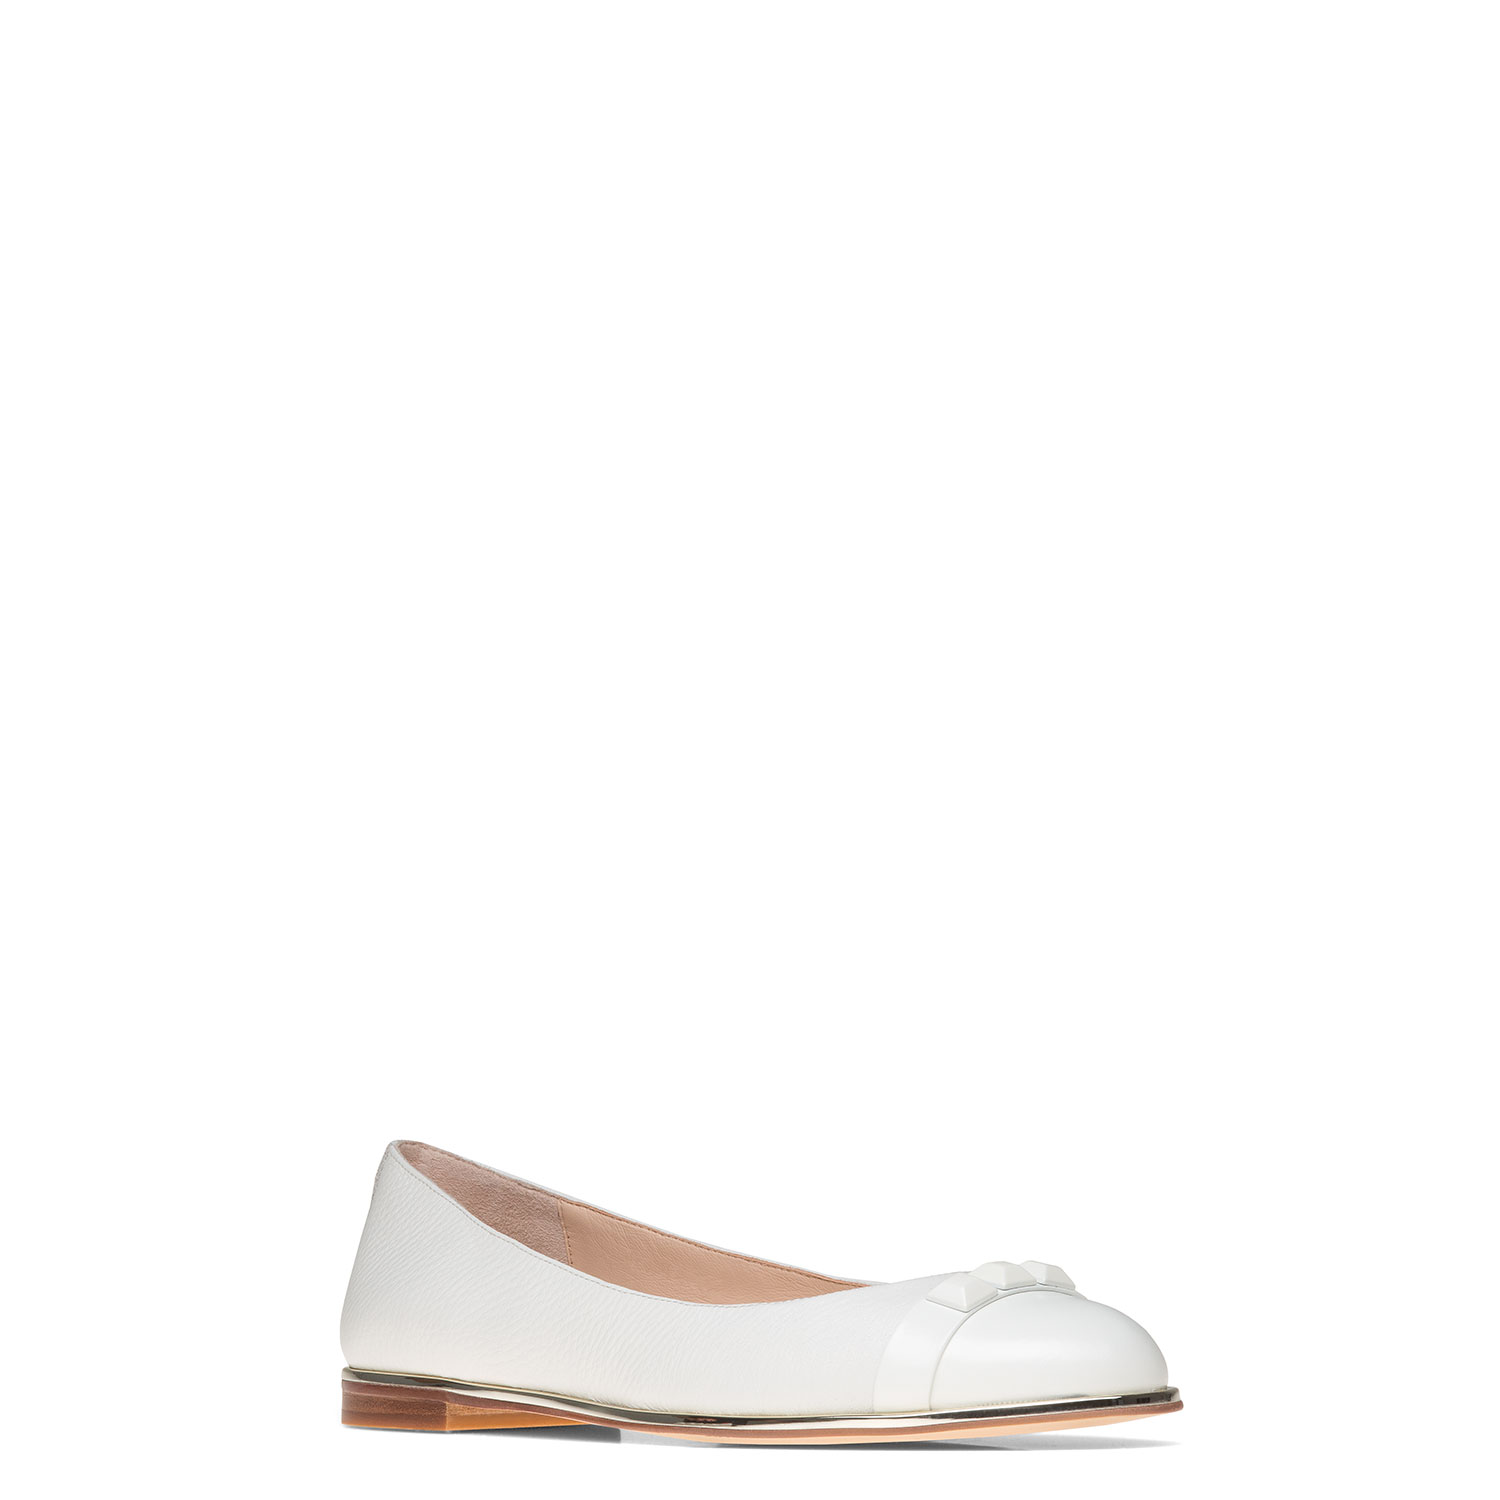 Women's shoes CARLO PAZOLINI MT-AUR3-4